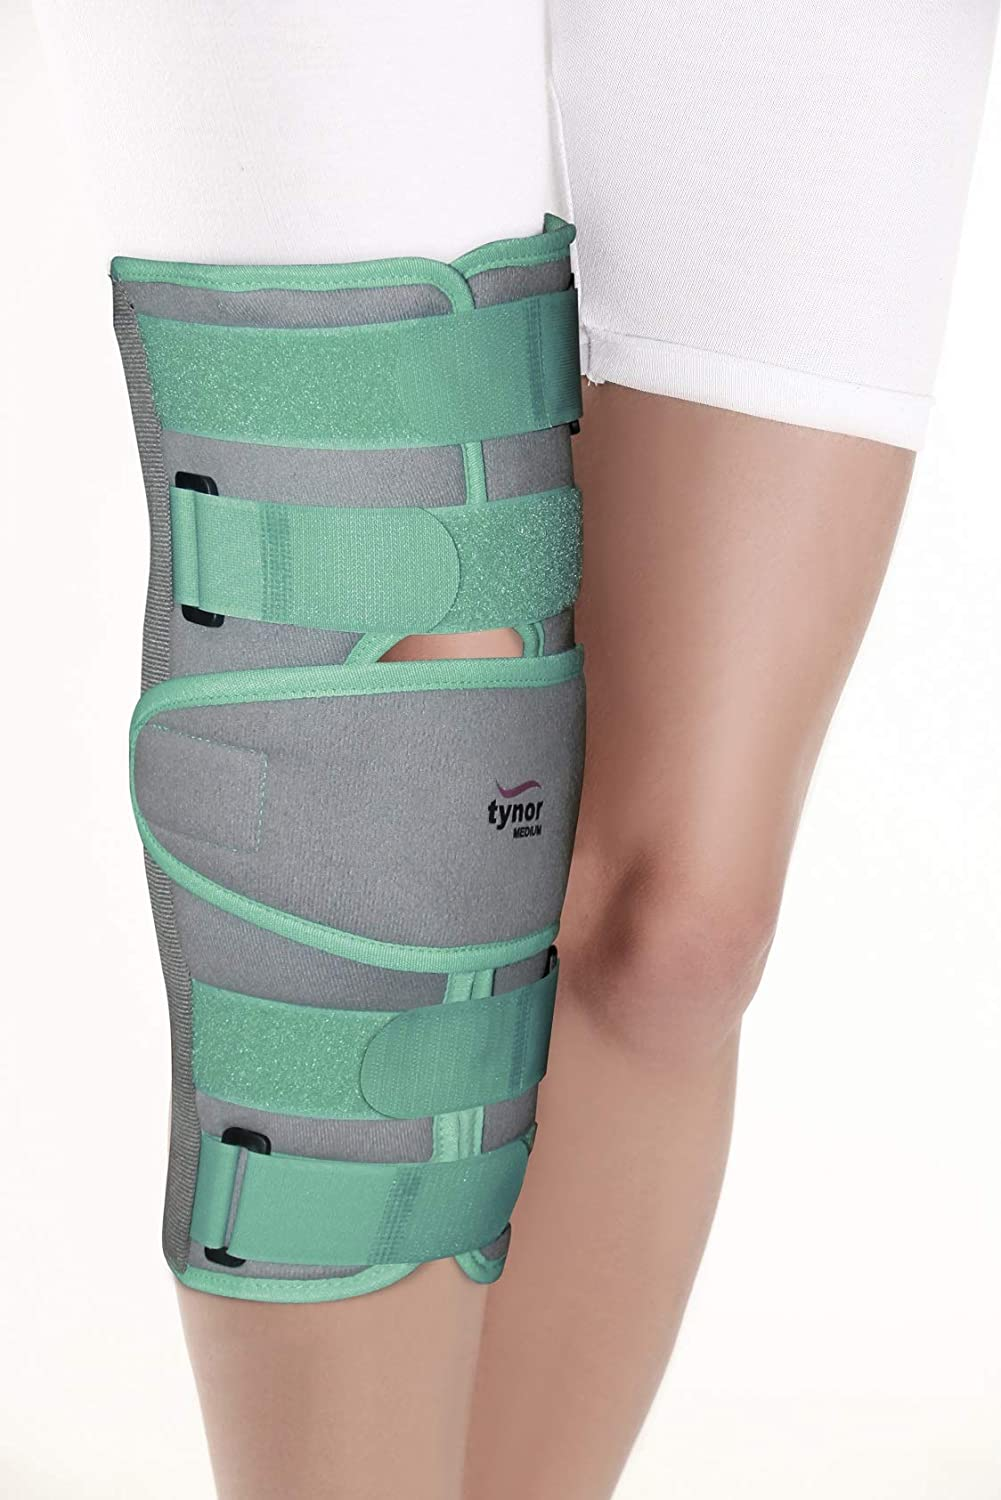 Tynor Raleigh Mall Knee Immobilizer Challenge the lowest price - XXL 14-Inch